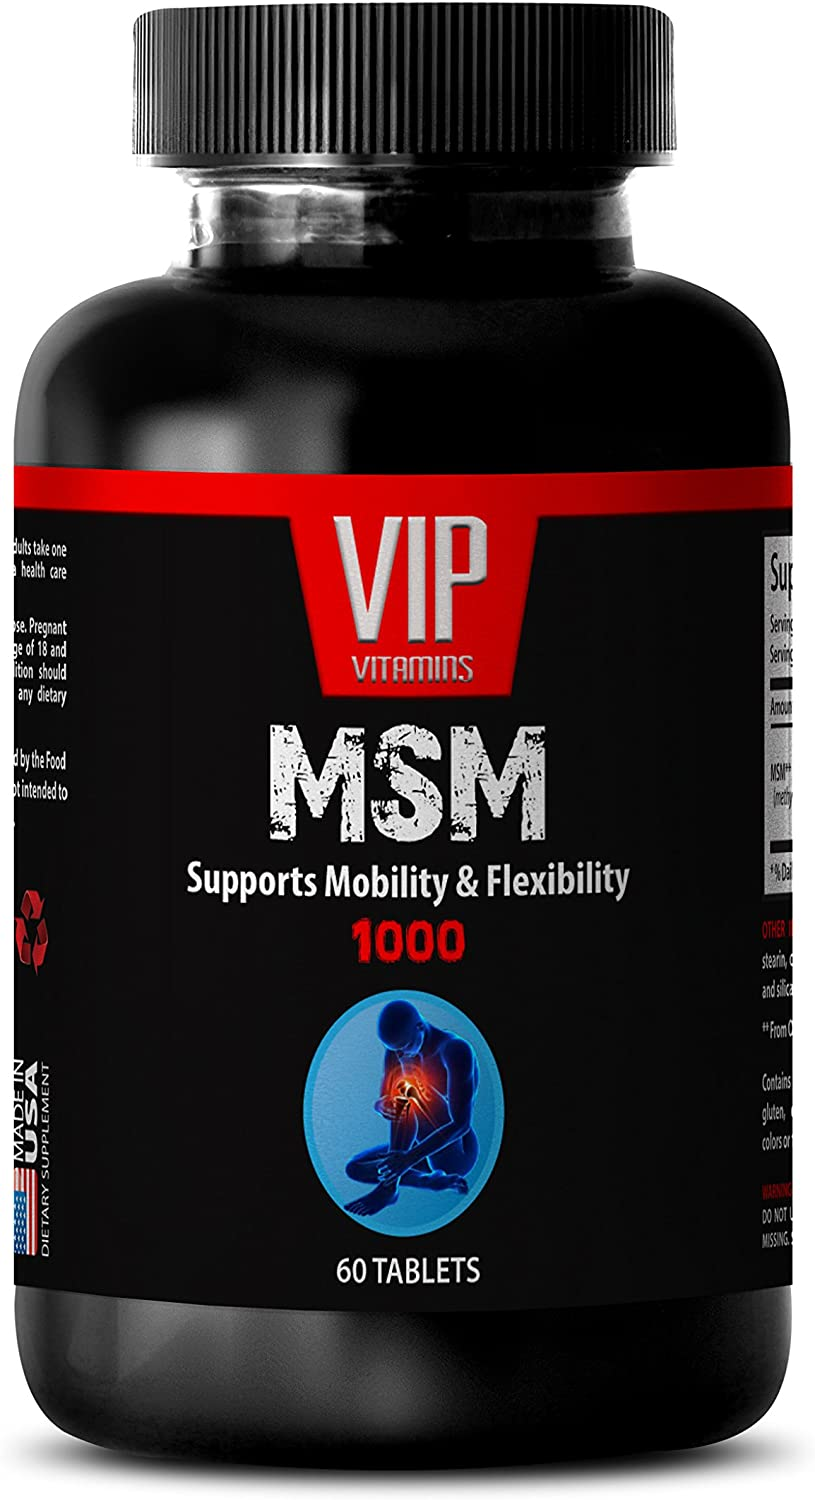 Natural Skin Care Products - MSM - MSM Supplements Natural - 1 Bottle 60 Tablets